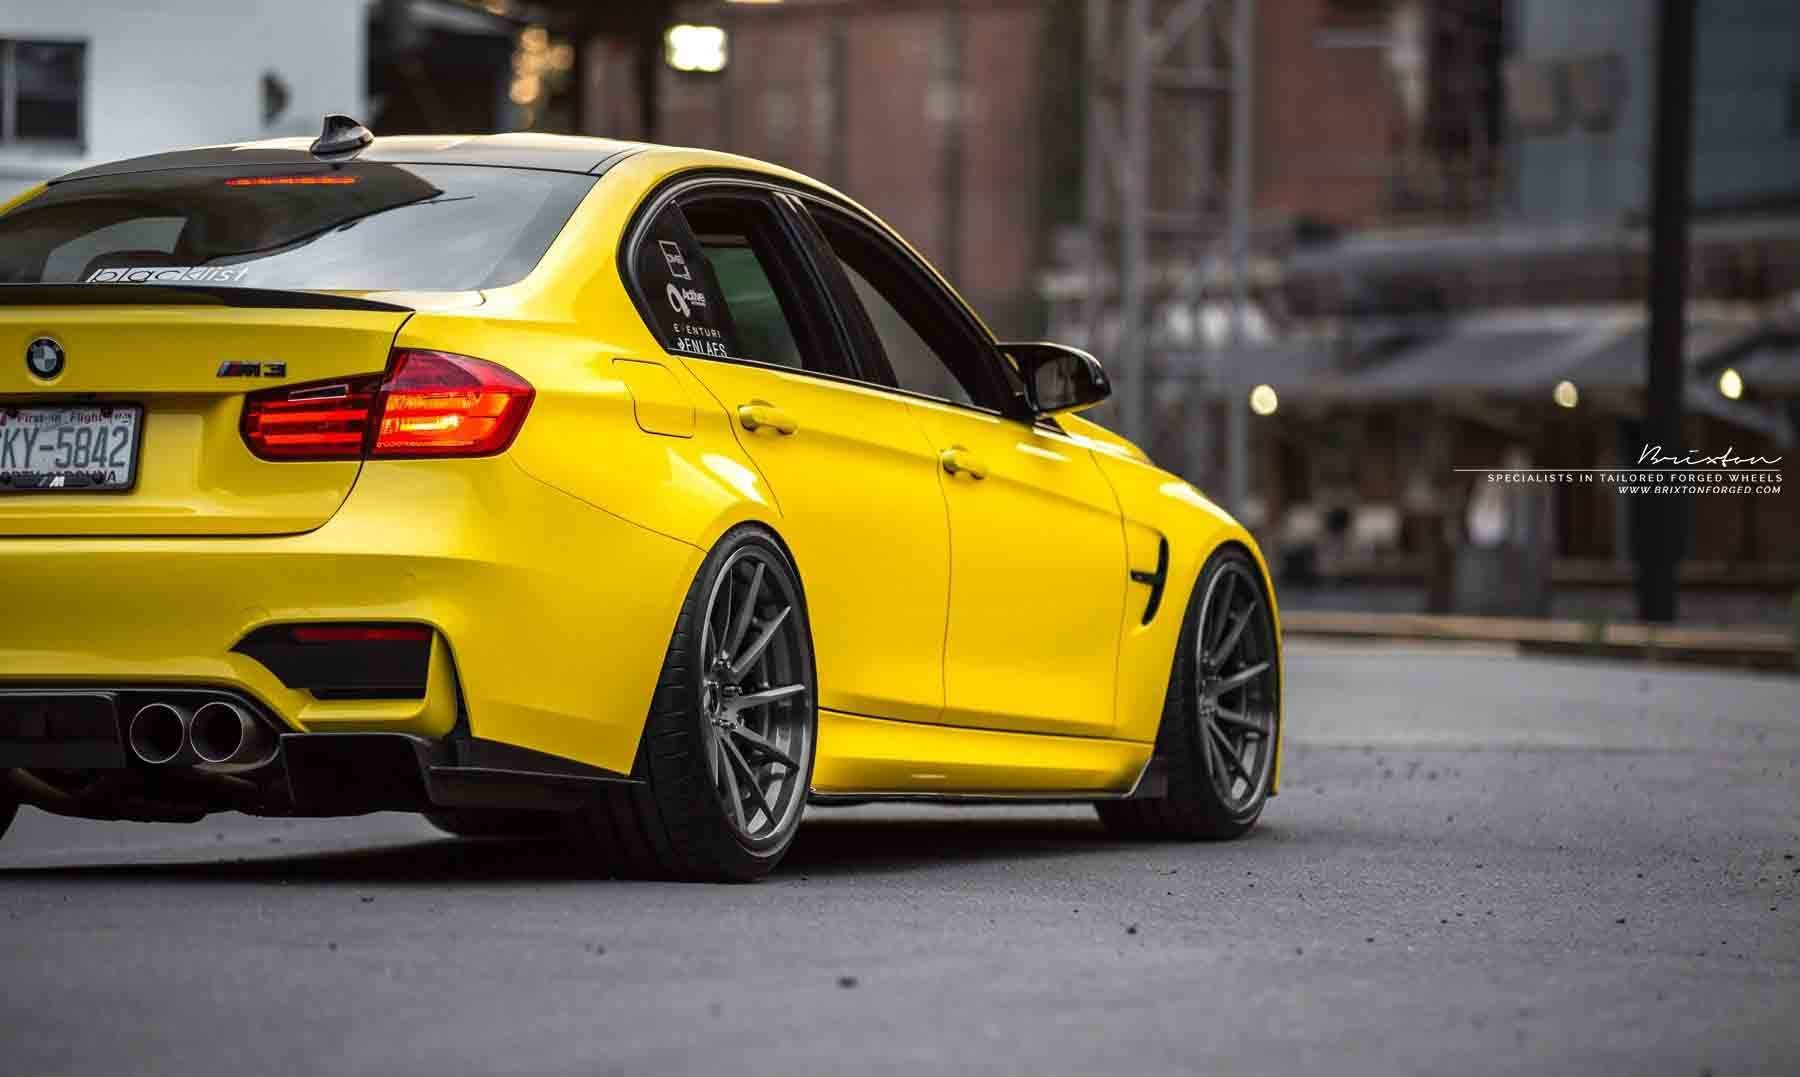 images-products-1-2775-232975063-brixton-forged-wheels-r10d-targa-bmw-f80-m3-yellow-gmp-performance-forged-wheels-smoke-black-8-1.jpg